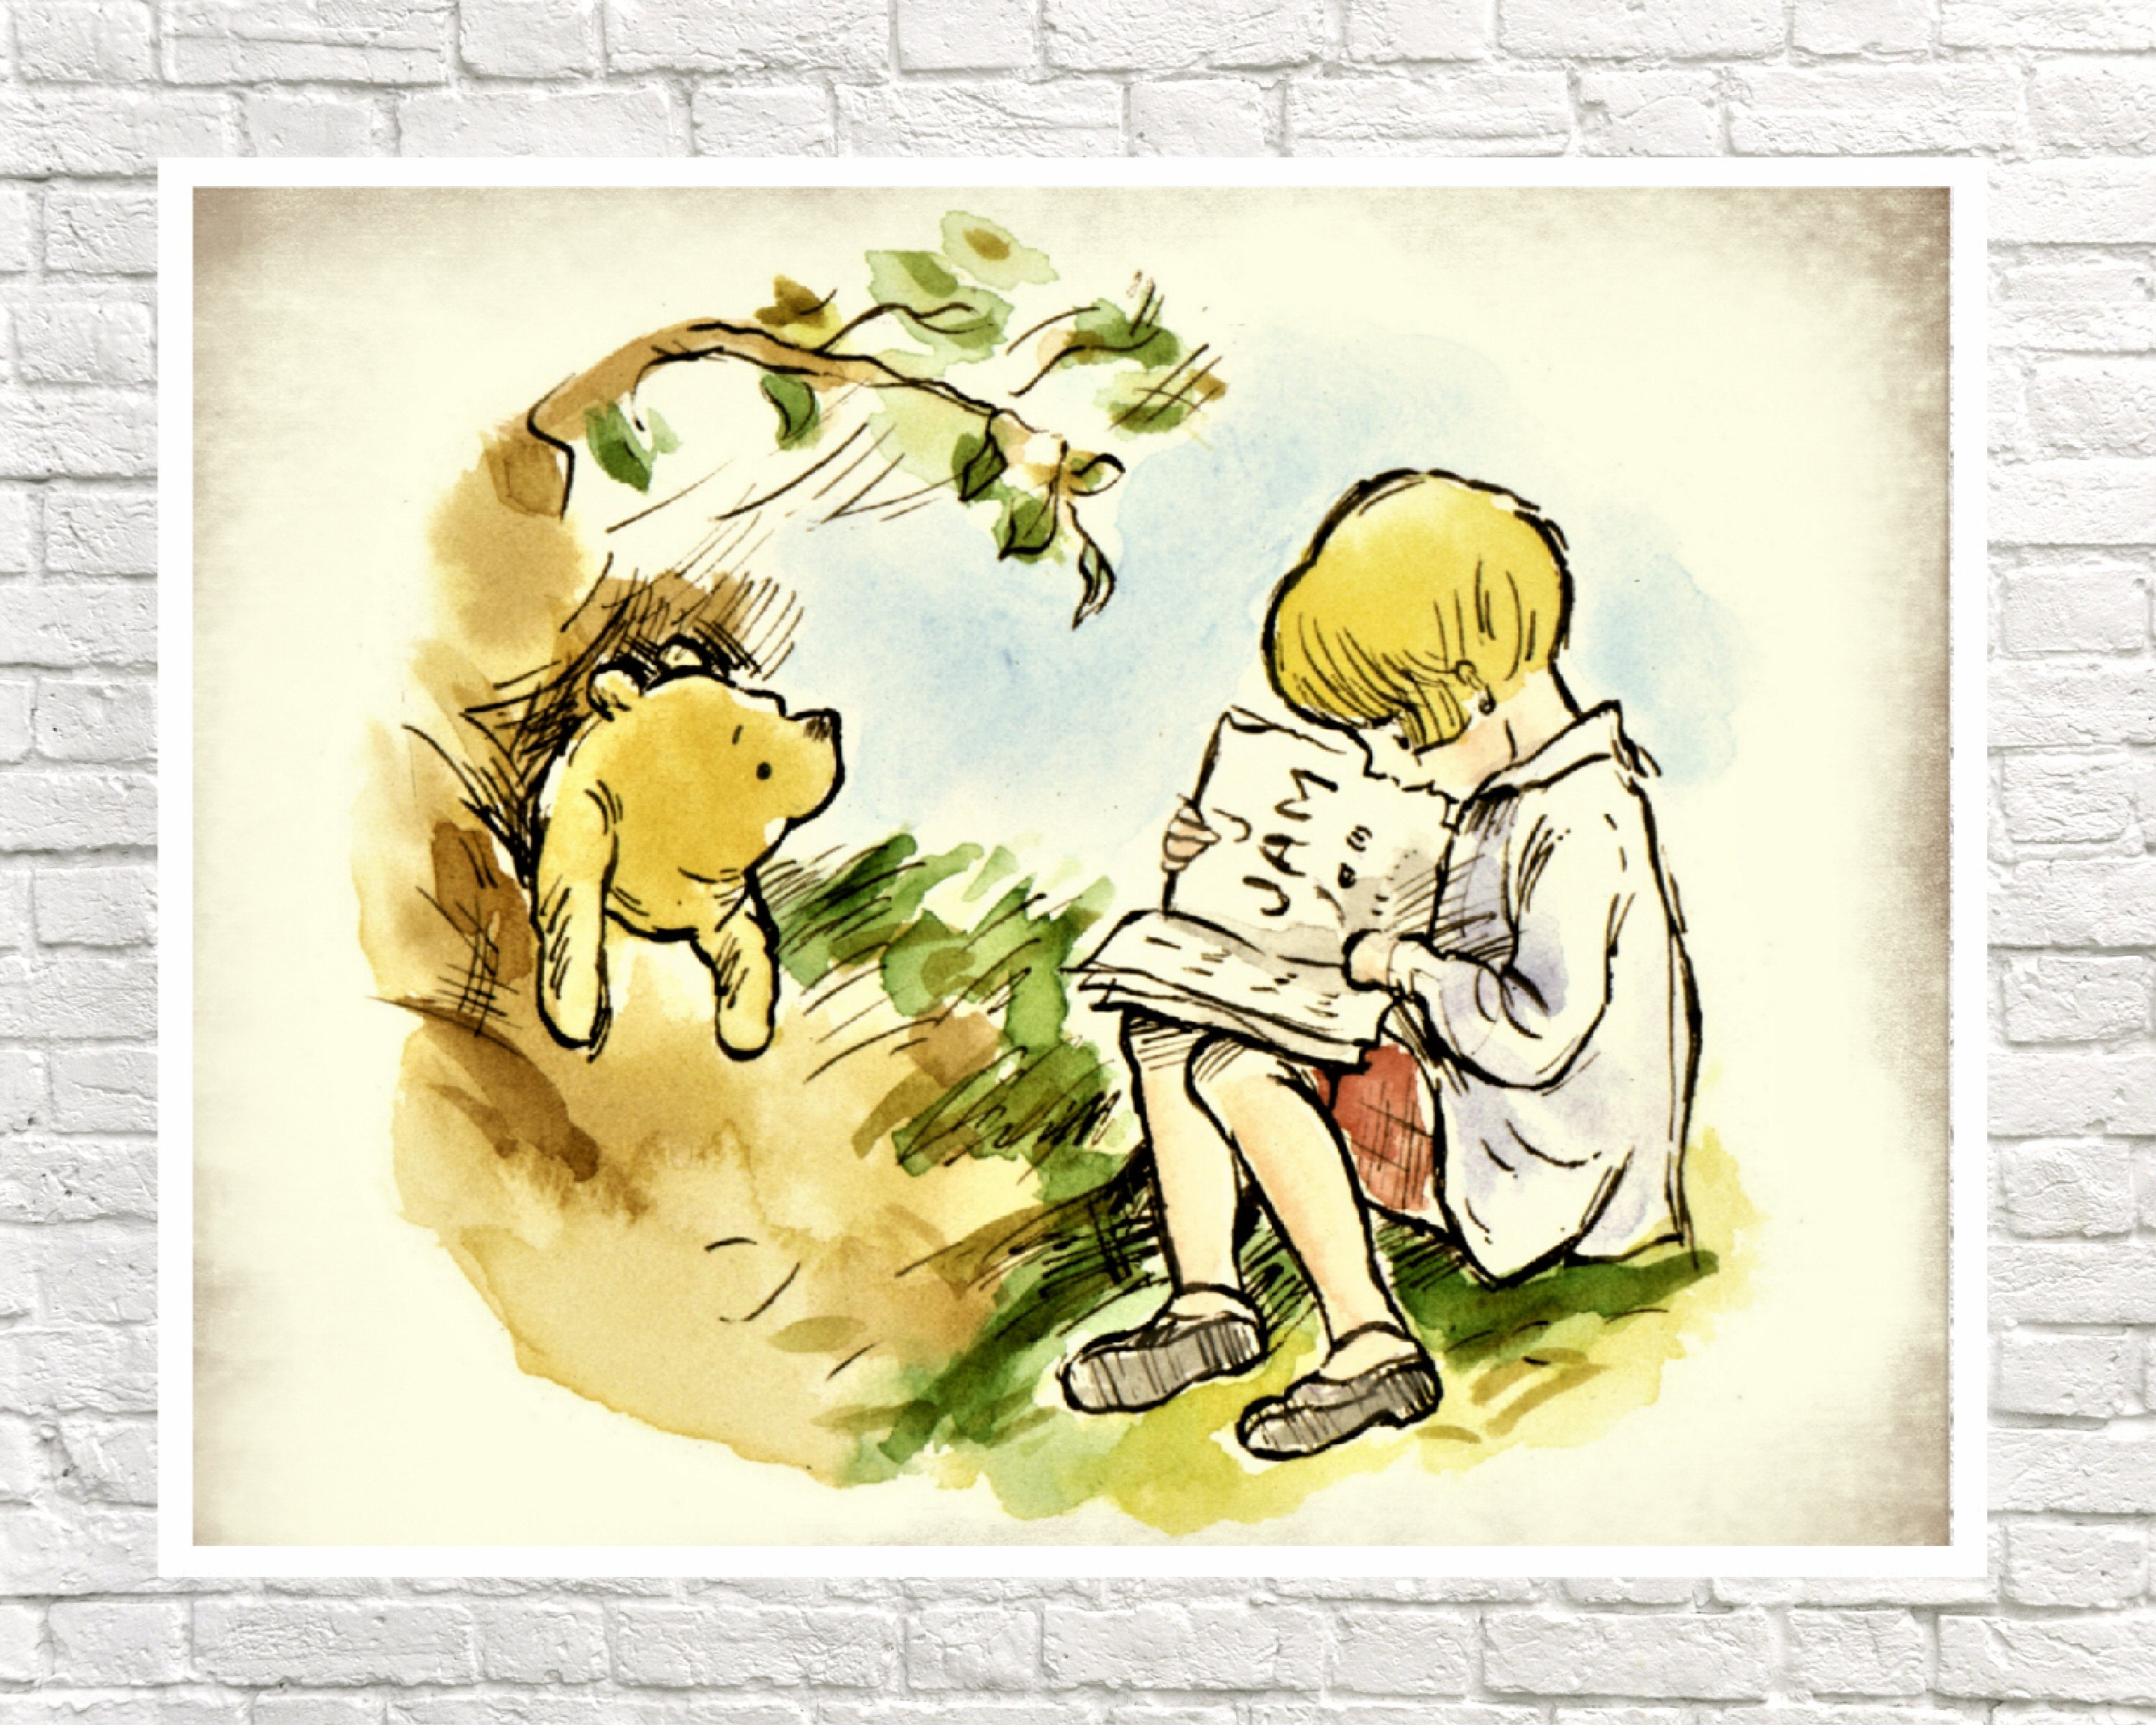 Outstanding Classic Winnie The Pooh Wall Art Model - The Wall Art ...